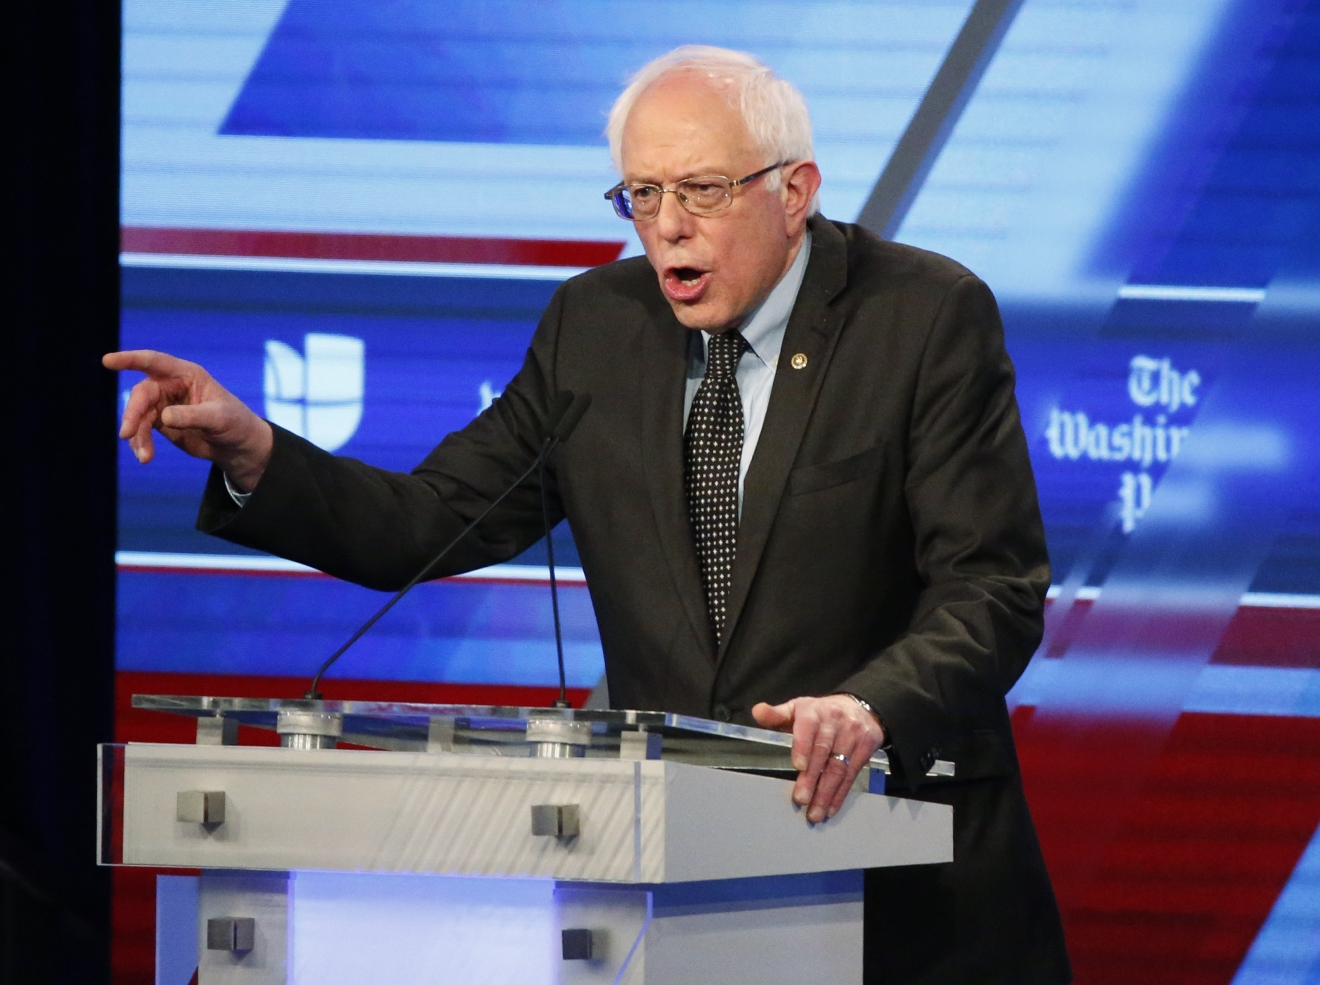 Democratic presidential candidate, Sen. Bernie Sanders, I-Vt, speaks at the Univision, Washington Post Democratic presidential debate at Miami-Dade College,  Wednesday, March 9, 2016, in Miami. (AP Photo/Wilfredo Lee)